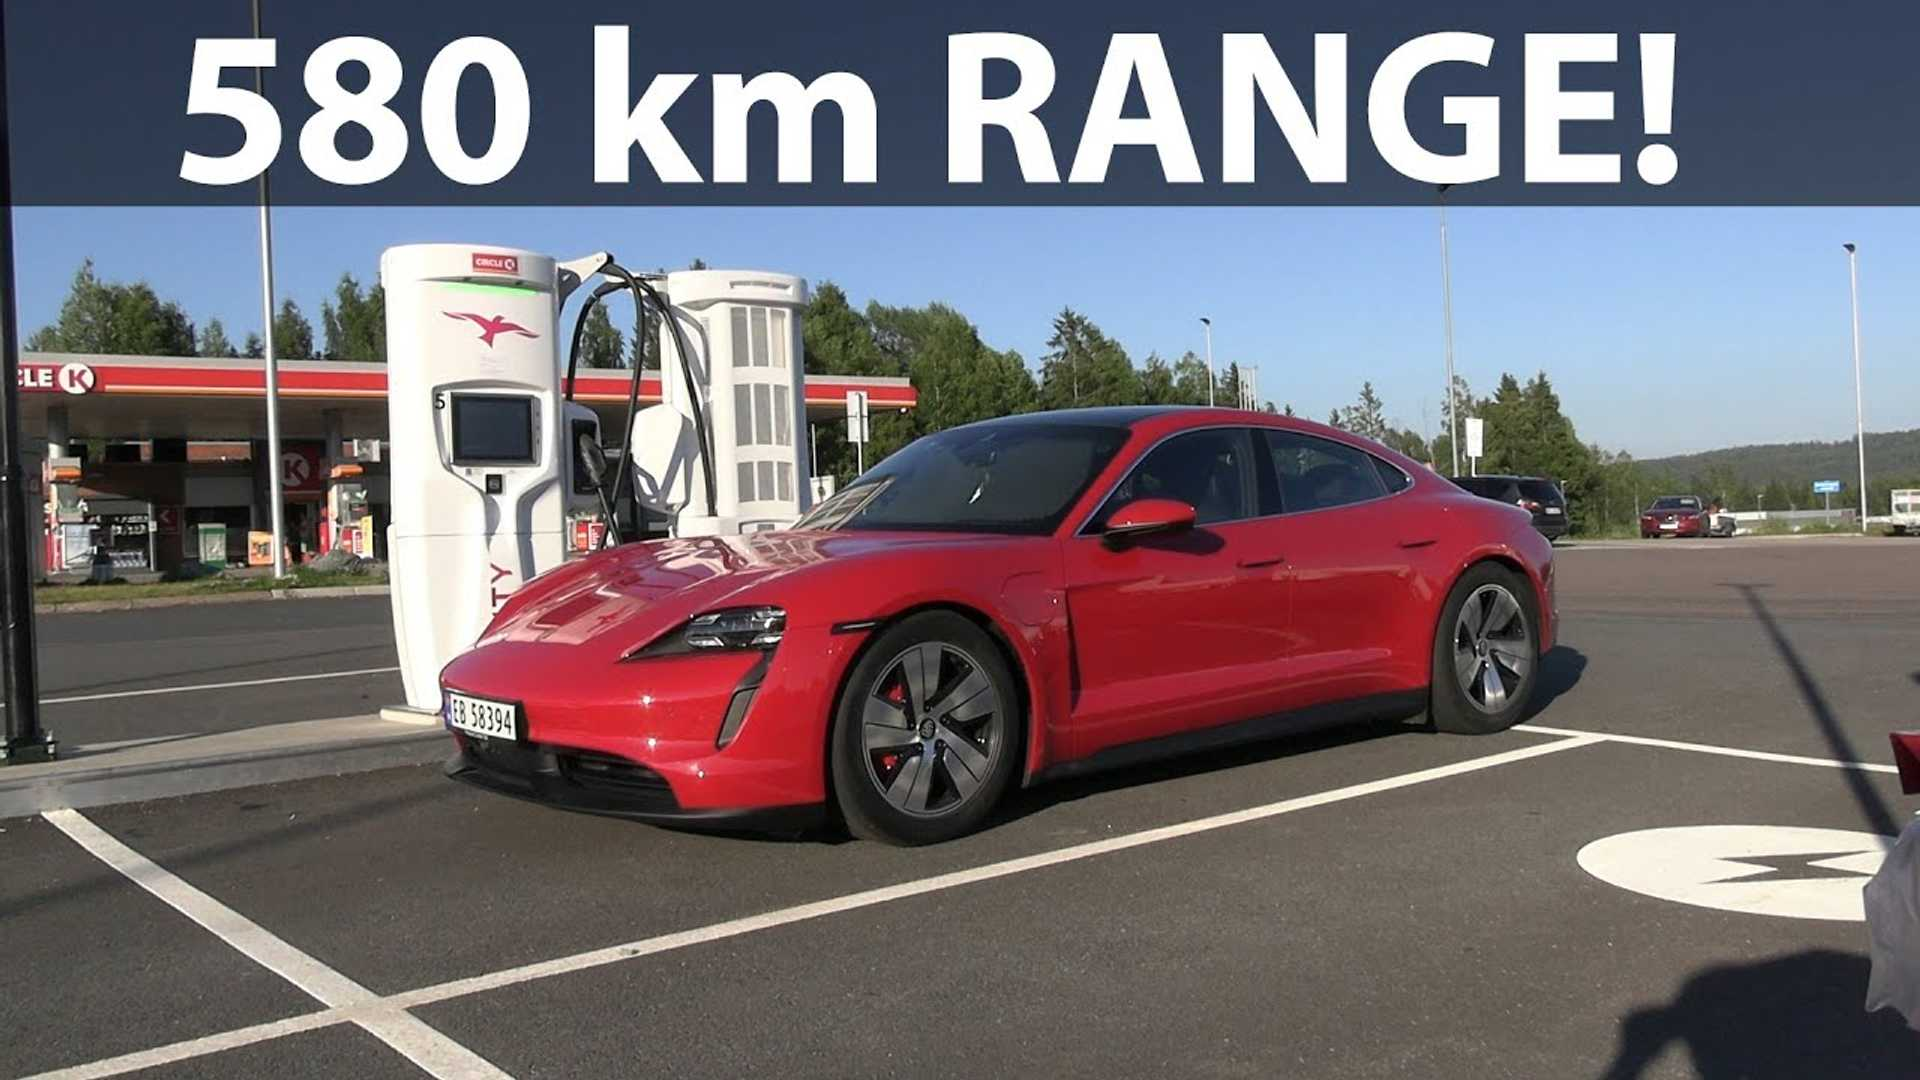 Porsche Taycan 4s 93 Kwh Range Test Surprises With Strong Results